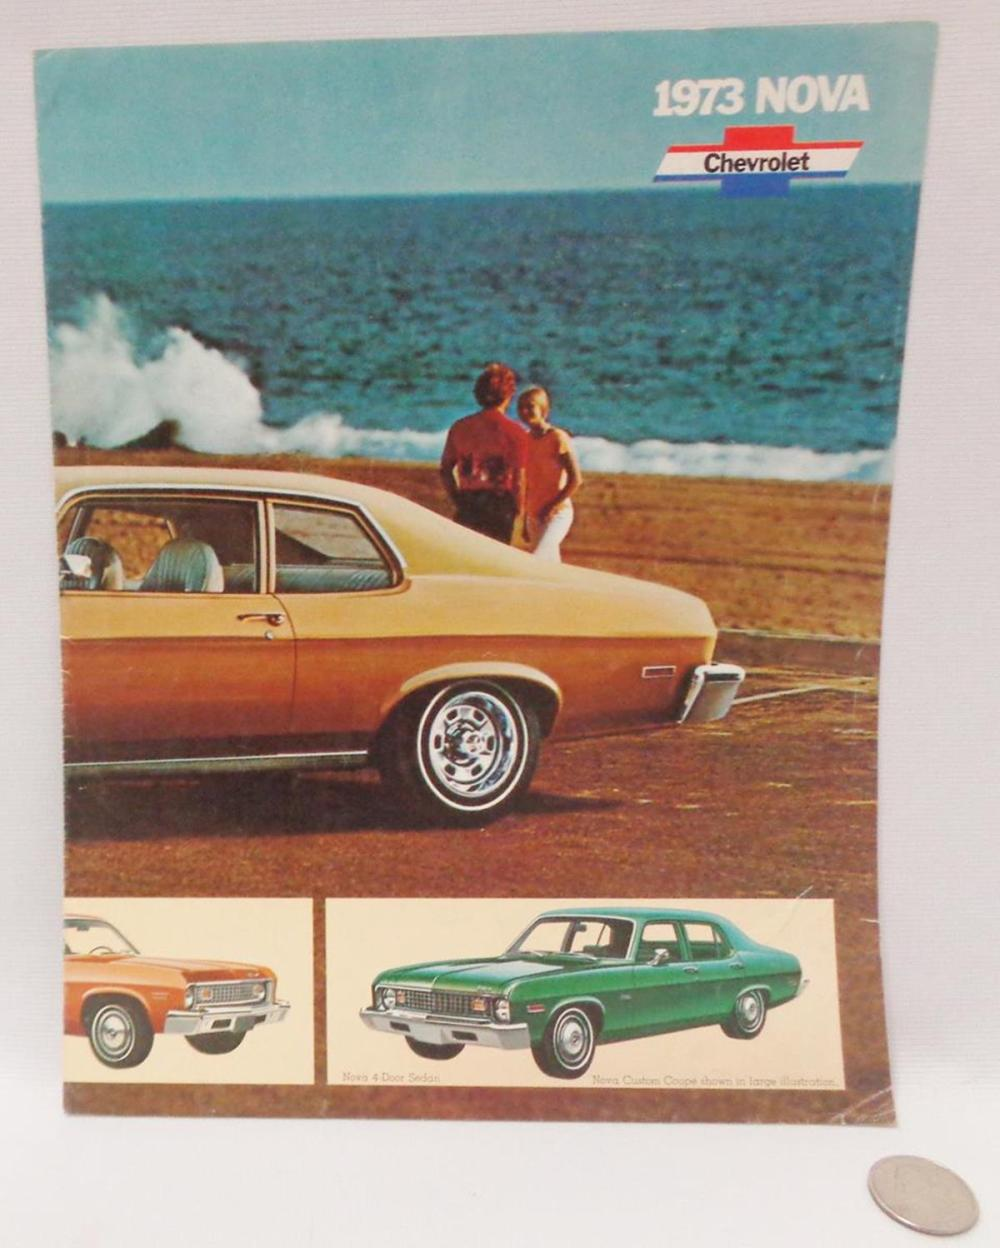 Vintage 1973 Chevrolet Nova SS Dealer Sales-Showroom Brochure Poster